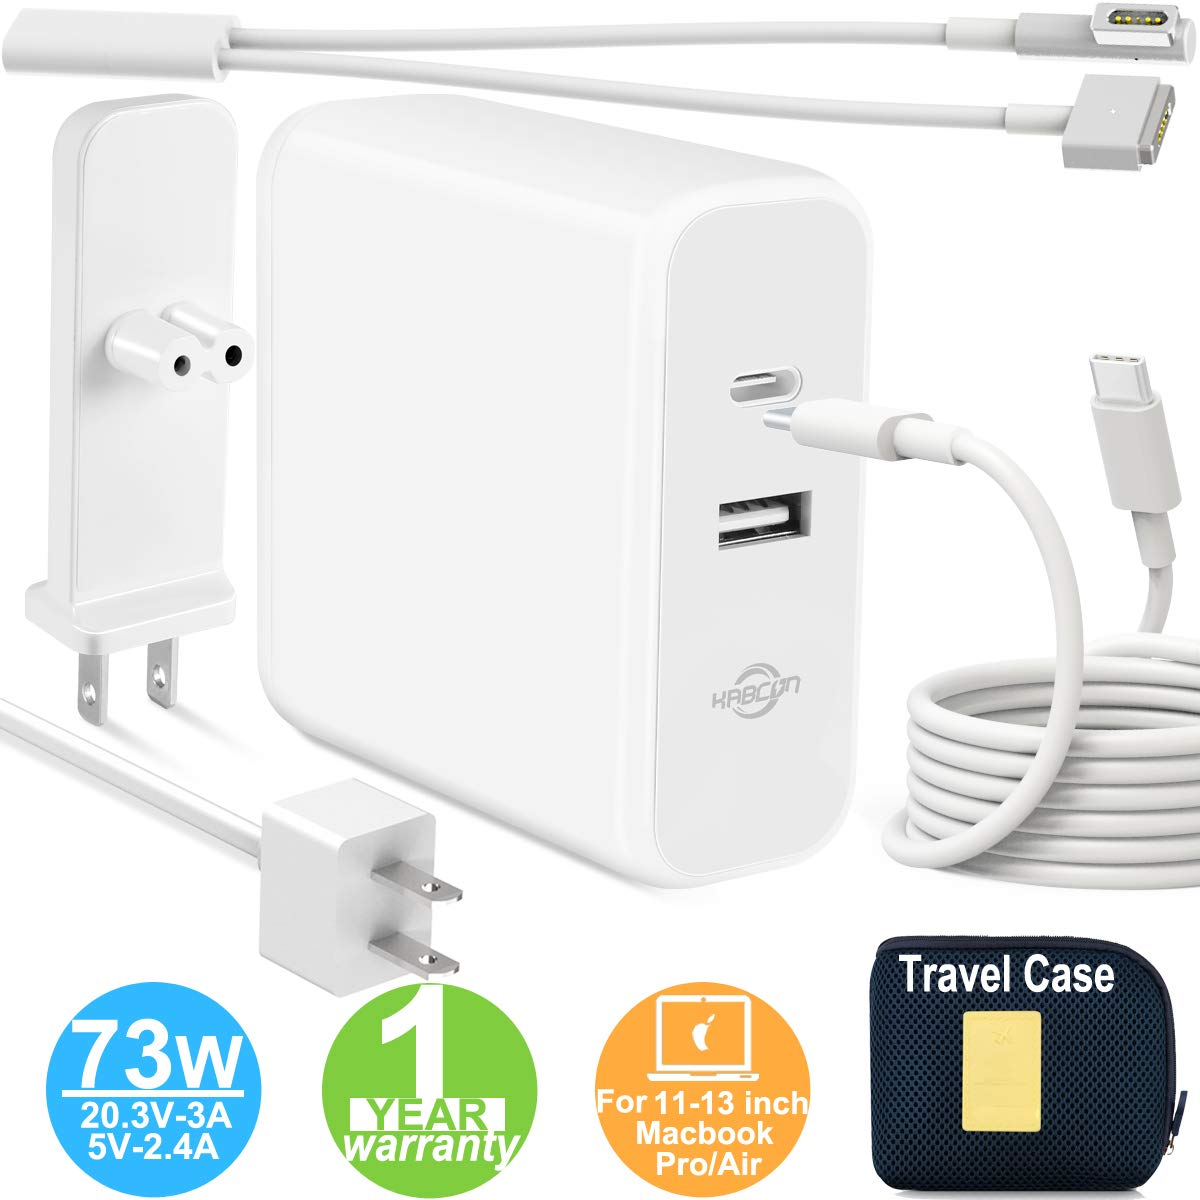 Mac Book Air Mac Book Pro Mac Book Charger, Type C 73W Power Adapter Charger with Magsafe 2 T-Tip for Mac Book Air Released After Mid 2012, with Magsafe L-Tip for Mac Book Pro Before Mid 2012 Models